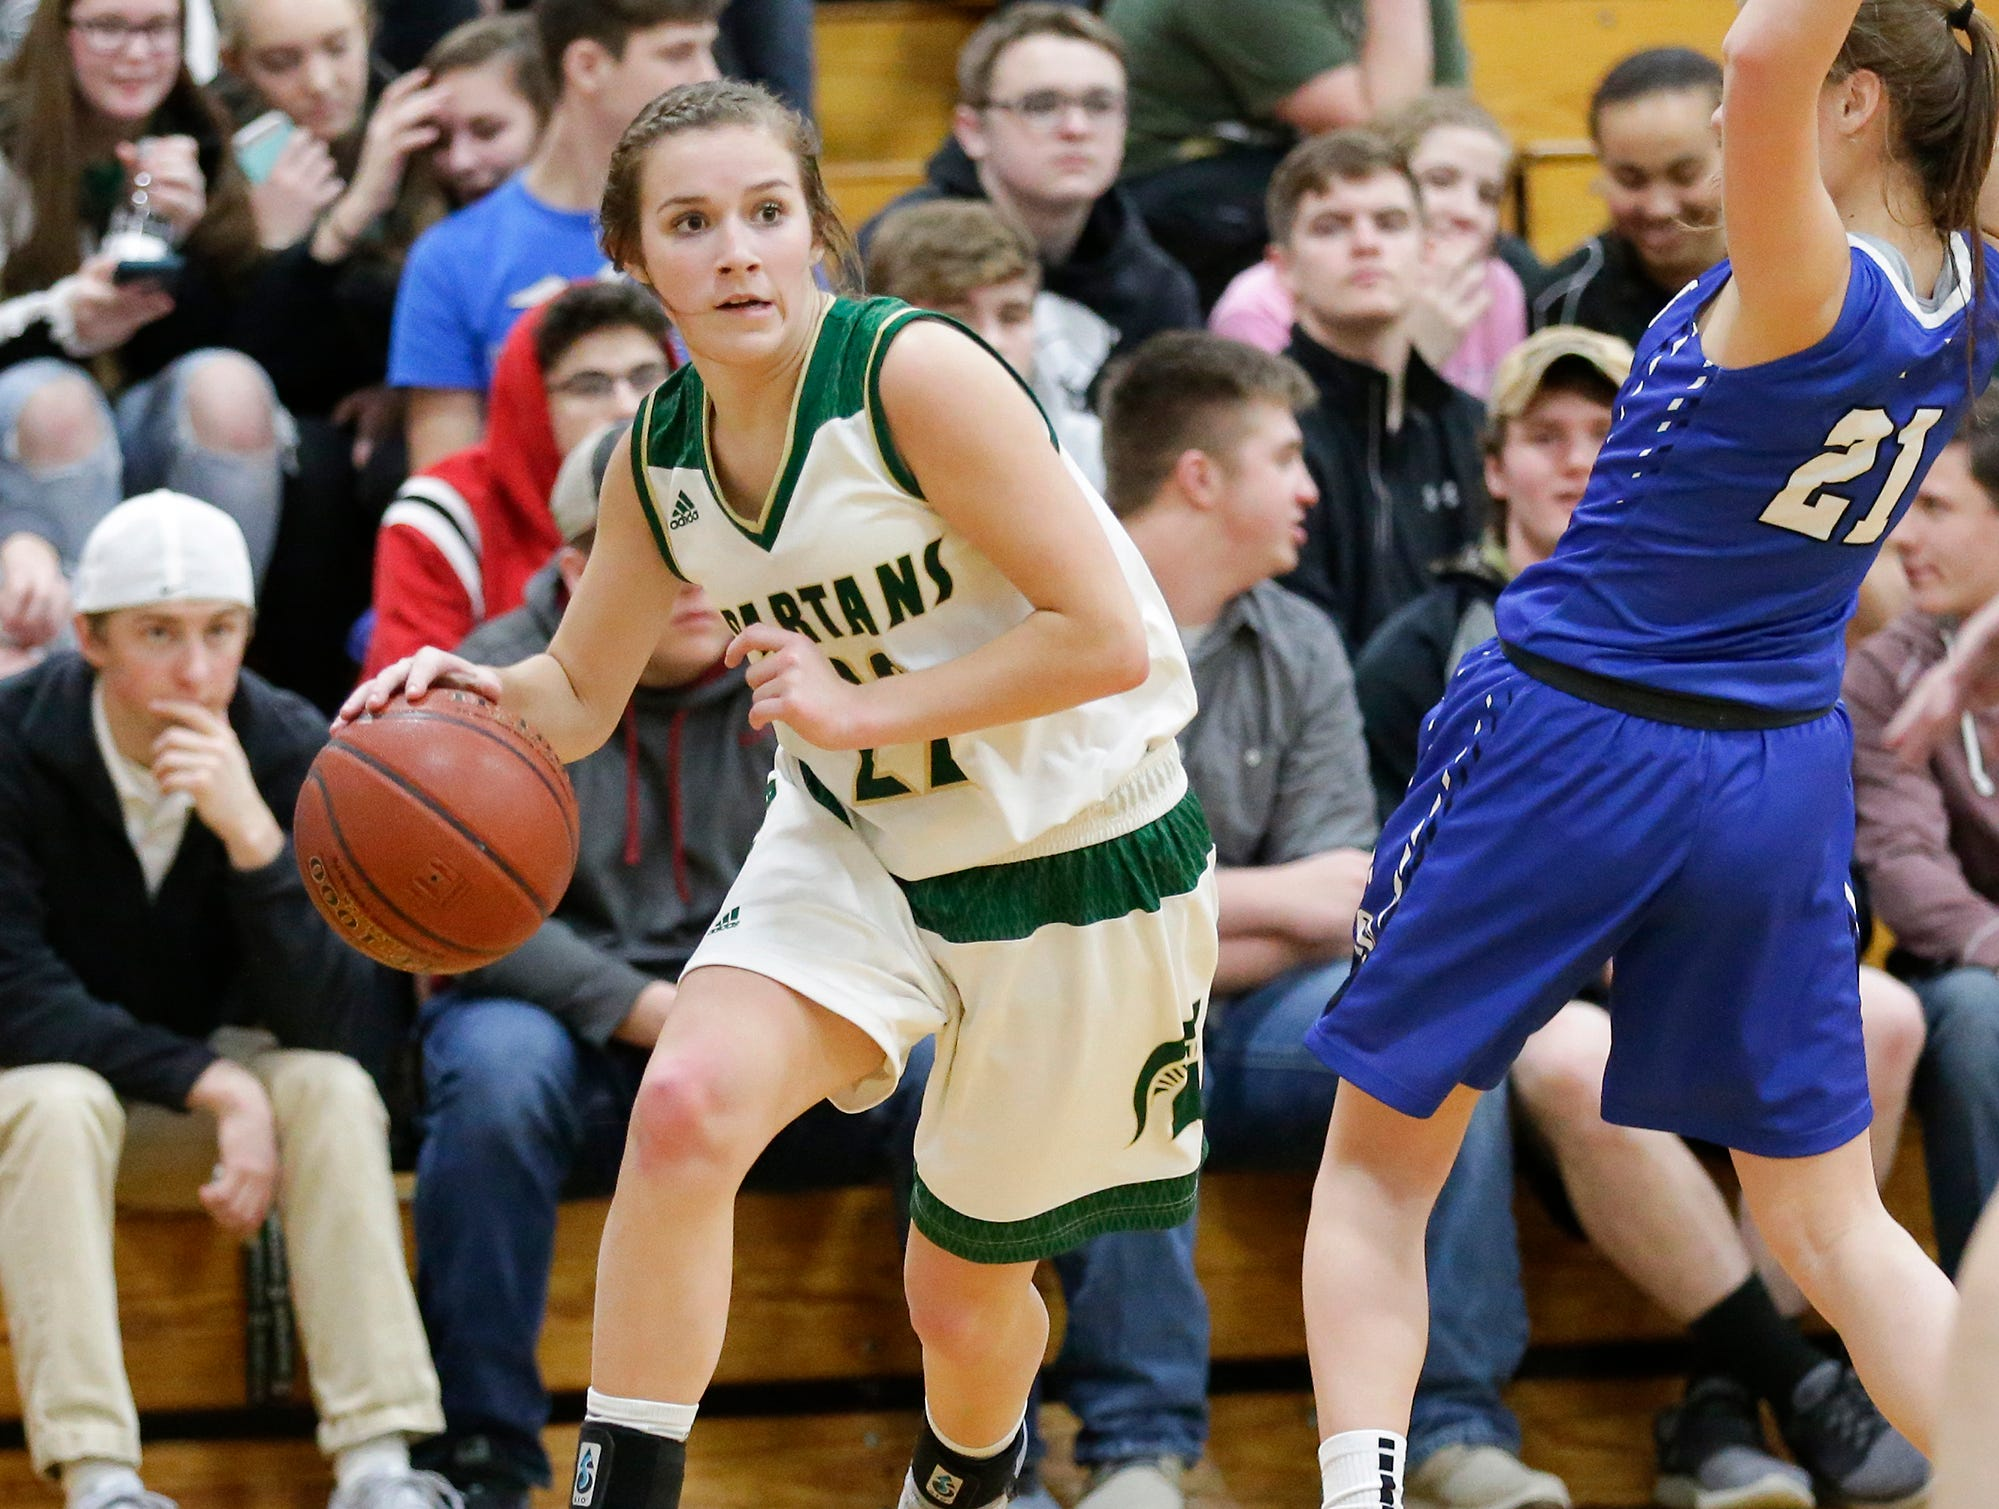 Laconia High School girls basketball's Haley Rens passes by St. Mary's Springs Academy's Jennifer Chatterton Tuesday, January 15, 2019 during their game in Rosendale. Laconia won the game 57-45. Doug Raflik/USA TODAY NETWORK-Wisconsin